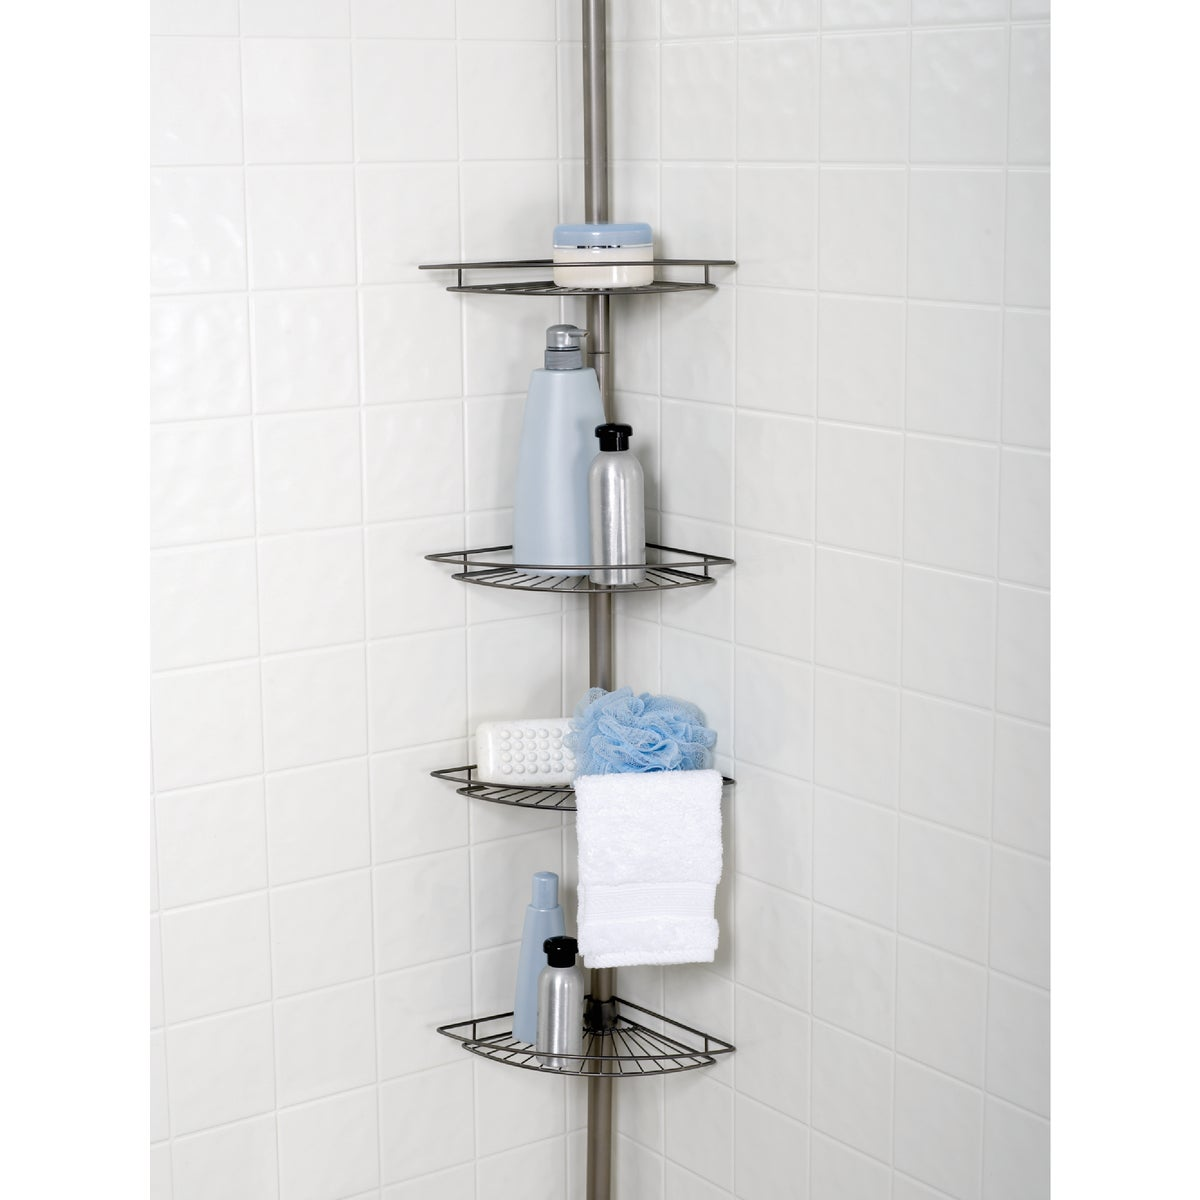 4-SHELF BN POLE CADDY